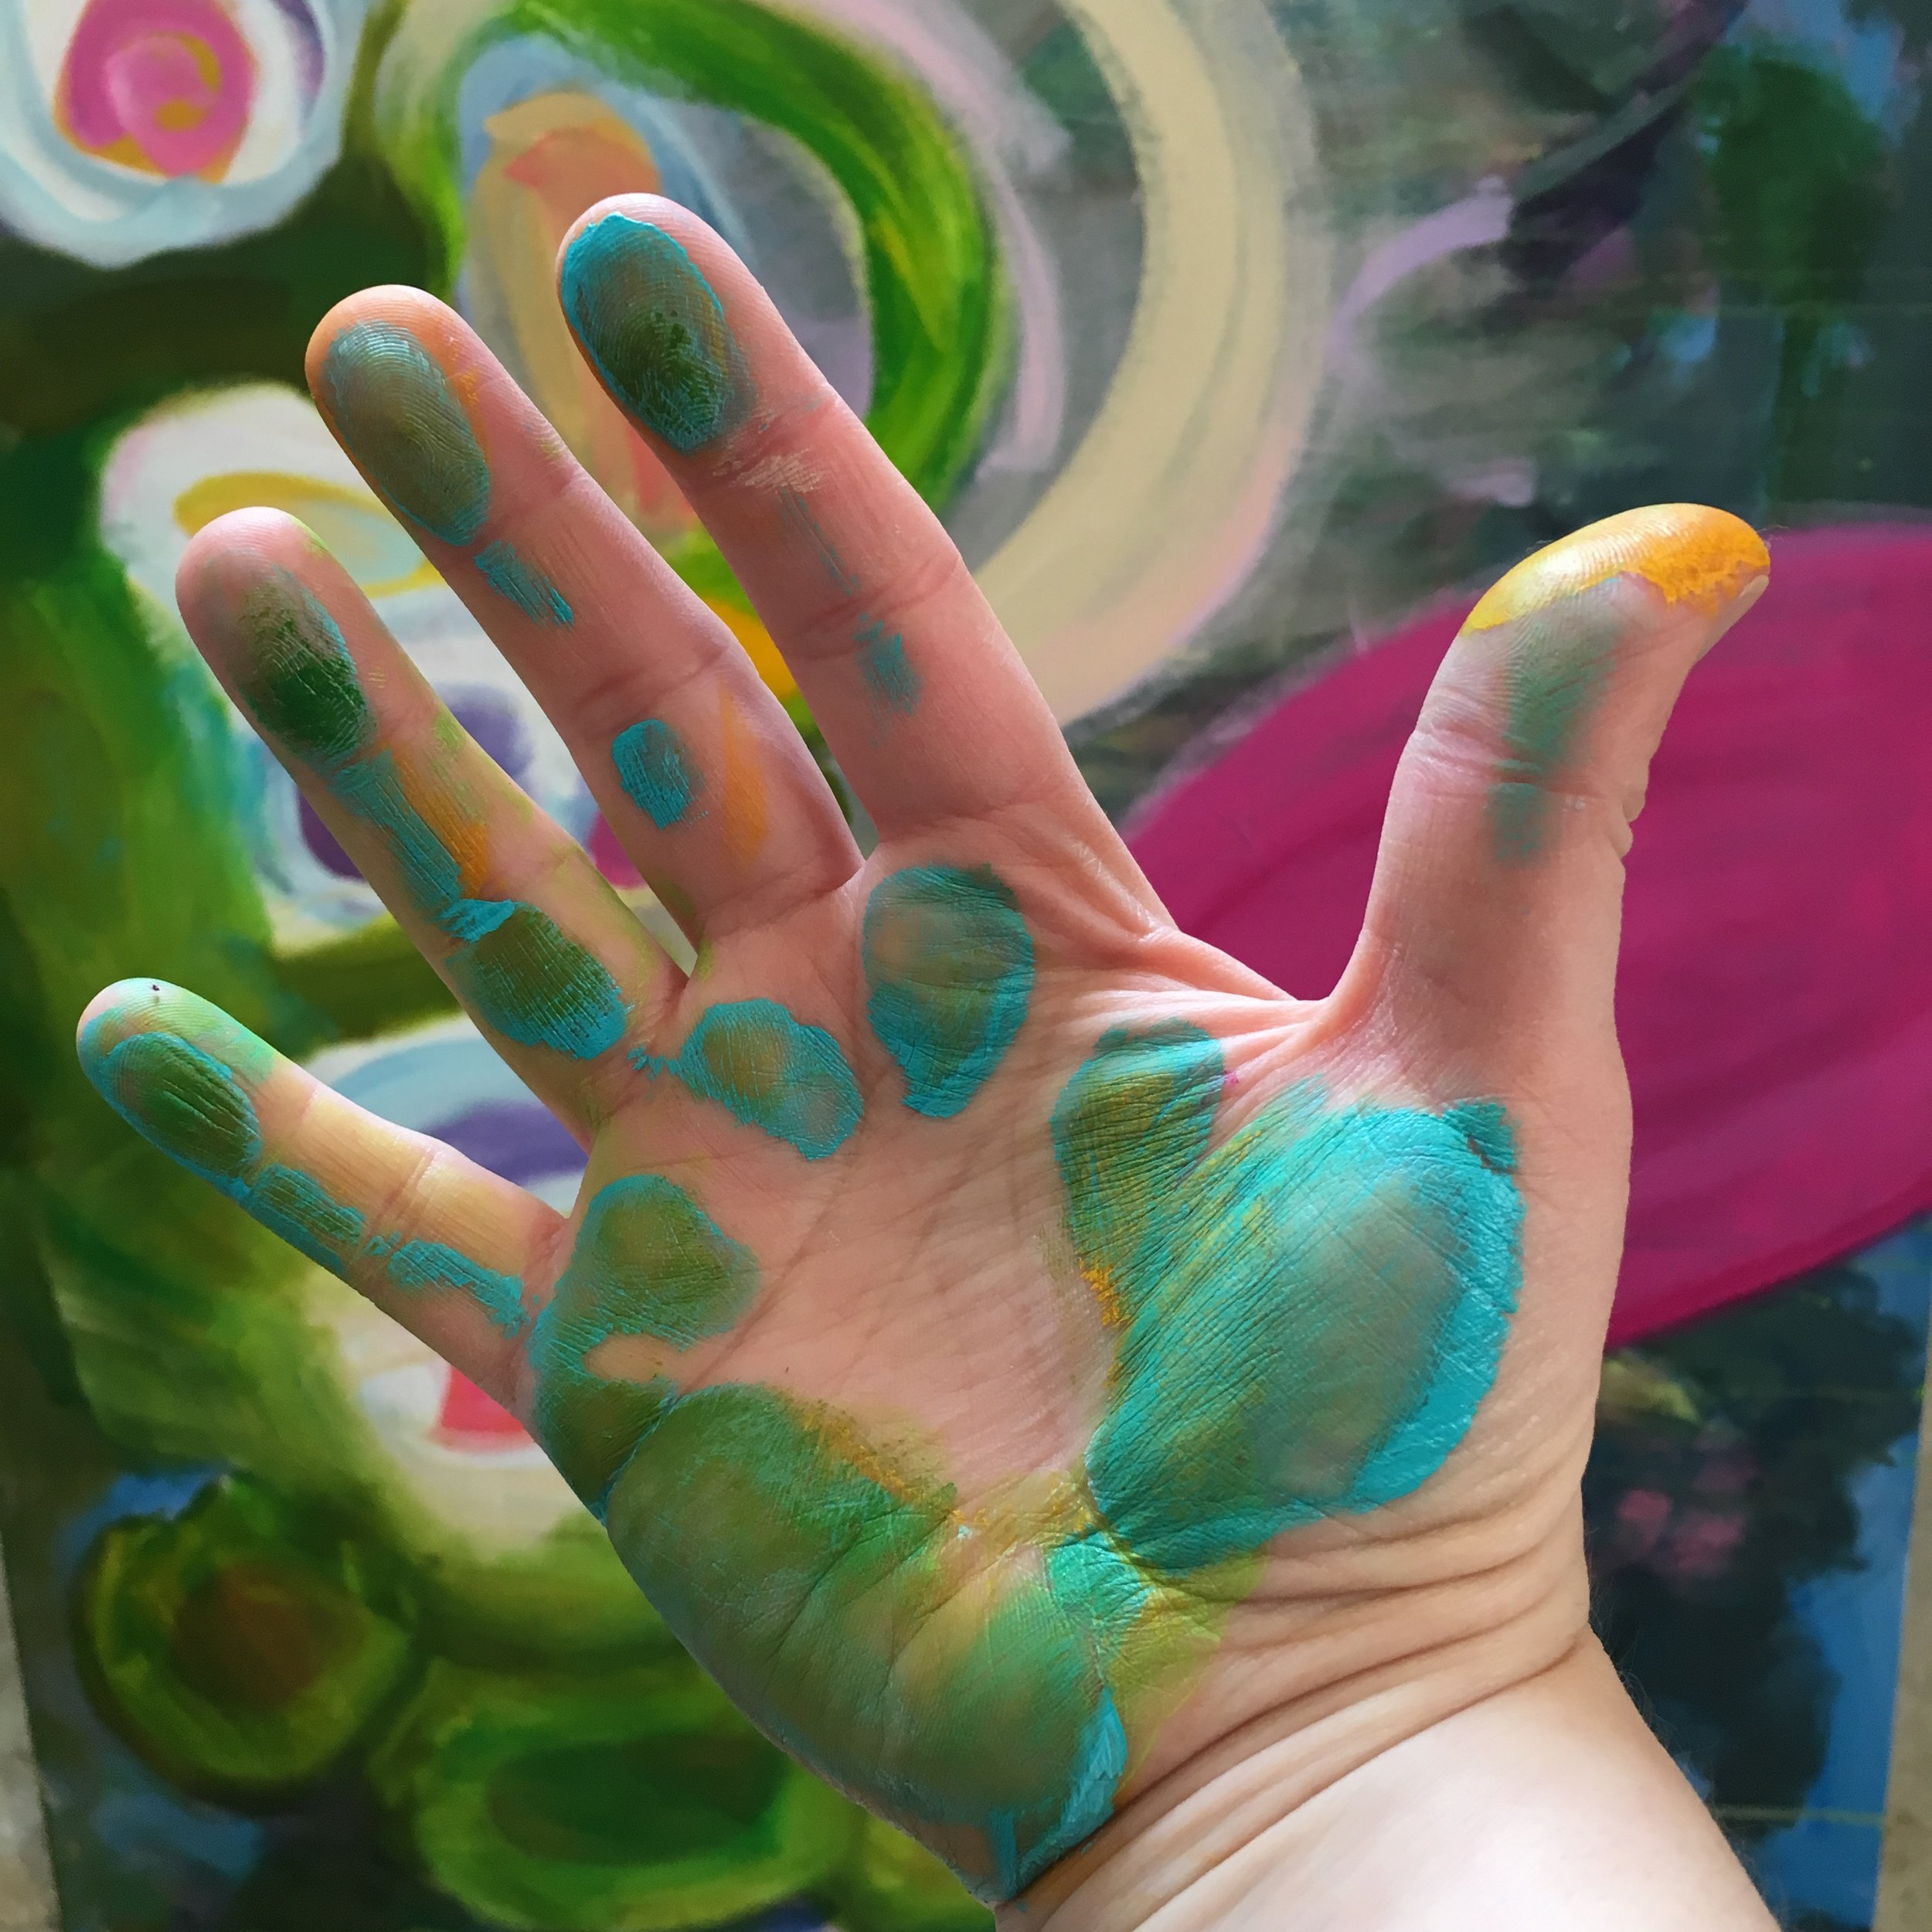 abstract art in hand